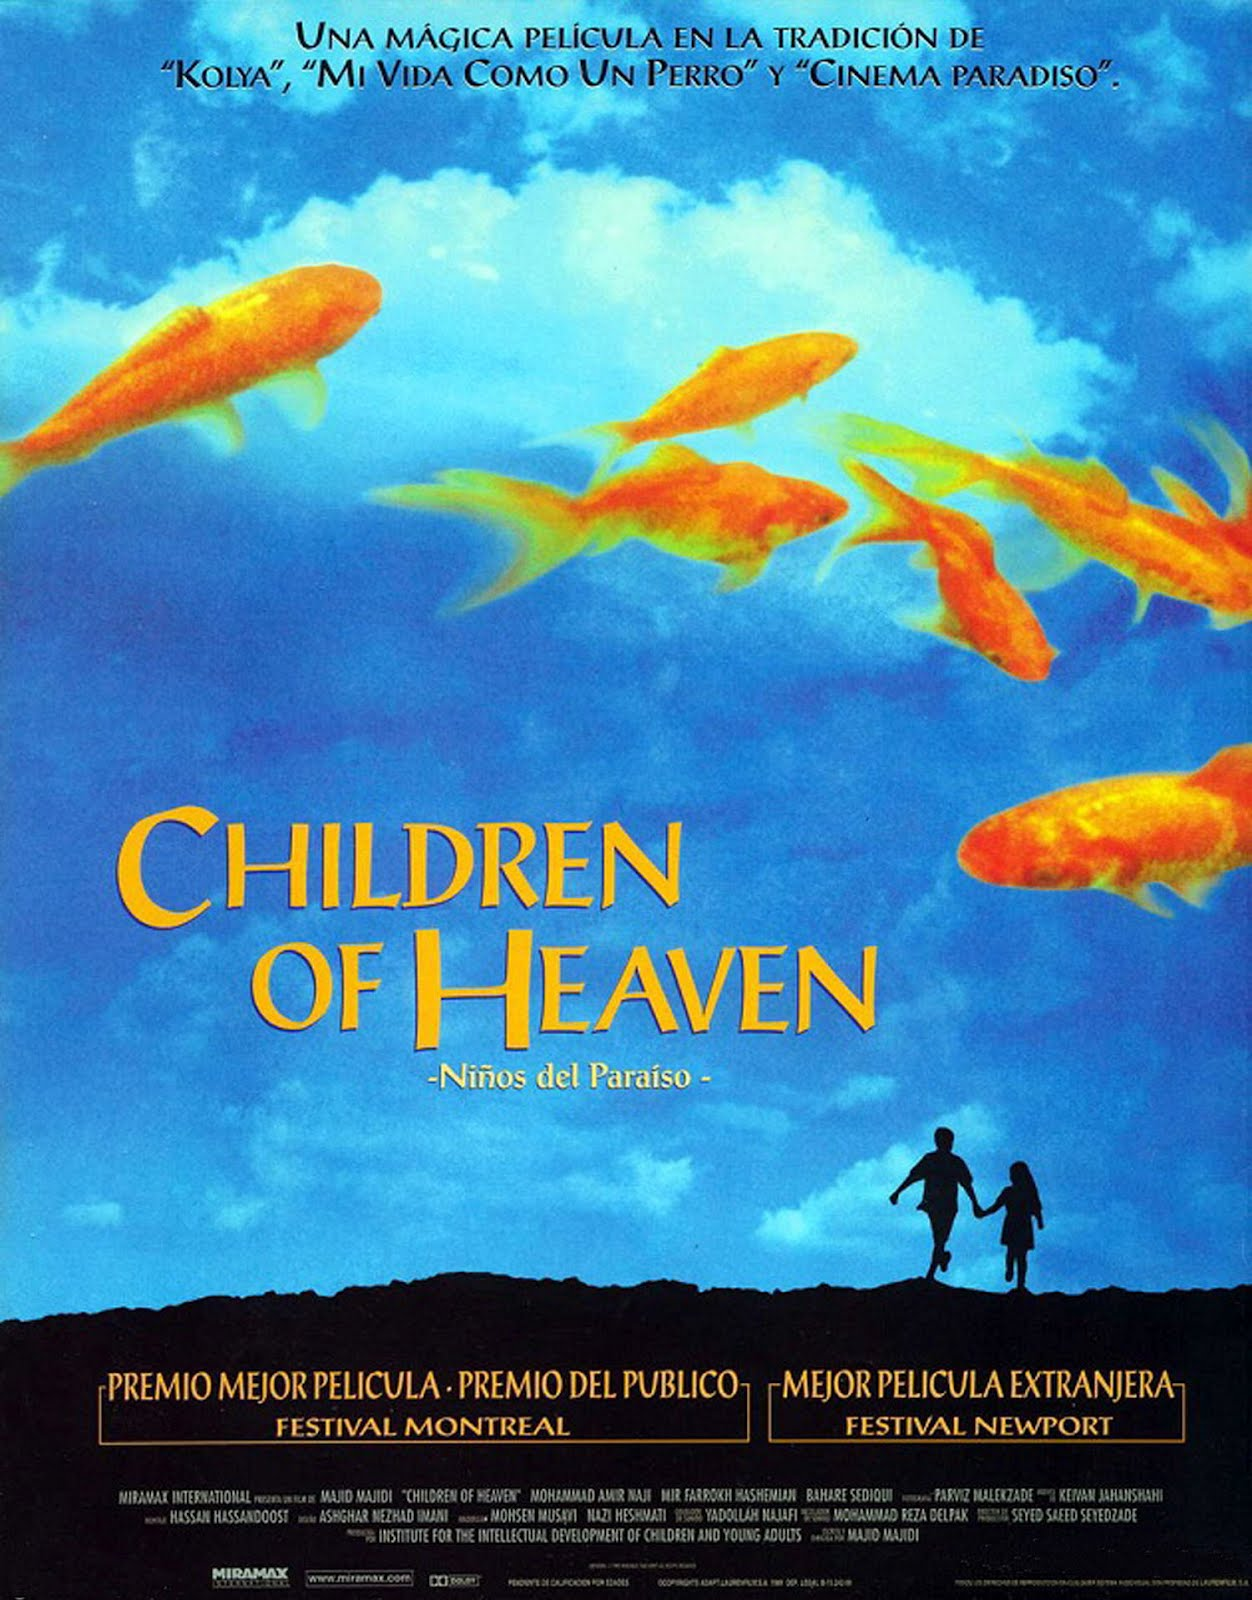 Children of heaven movie essay